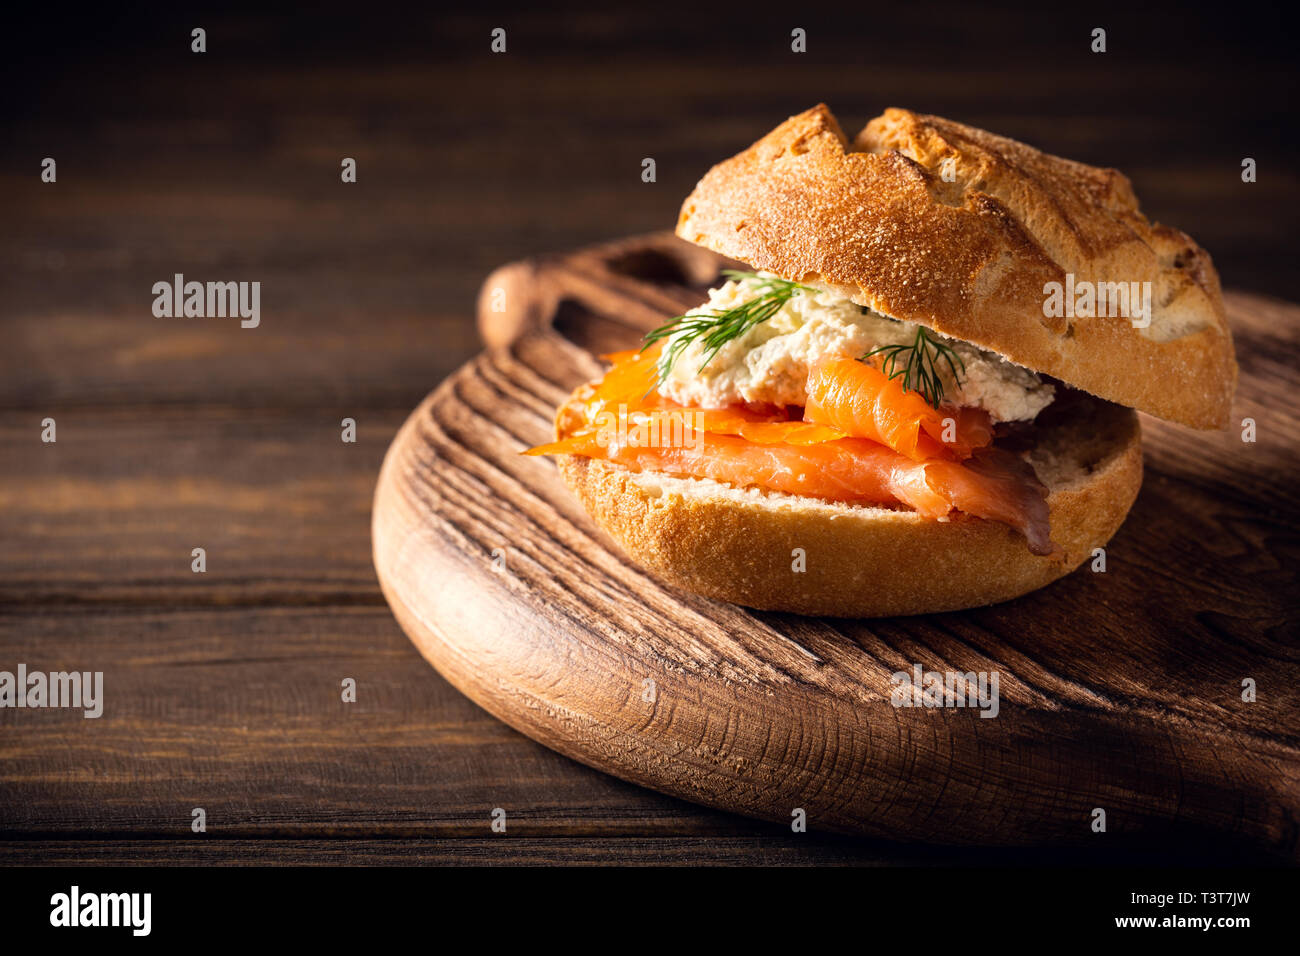 Sandwiche with salmon and herb butter on old wooden table. Healthy food background concept with copy space - Stock Image